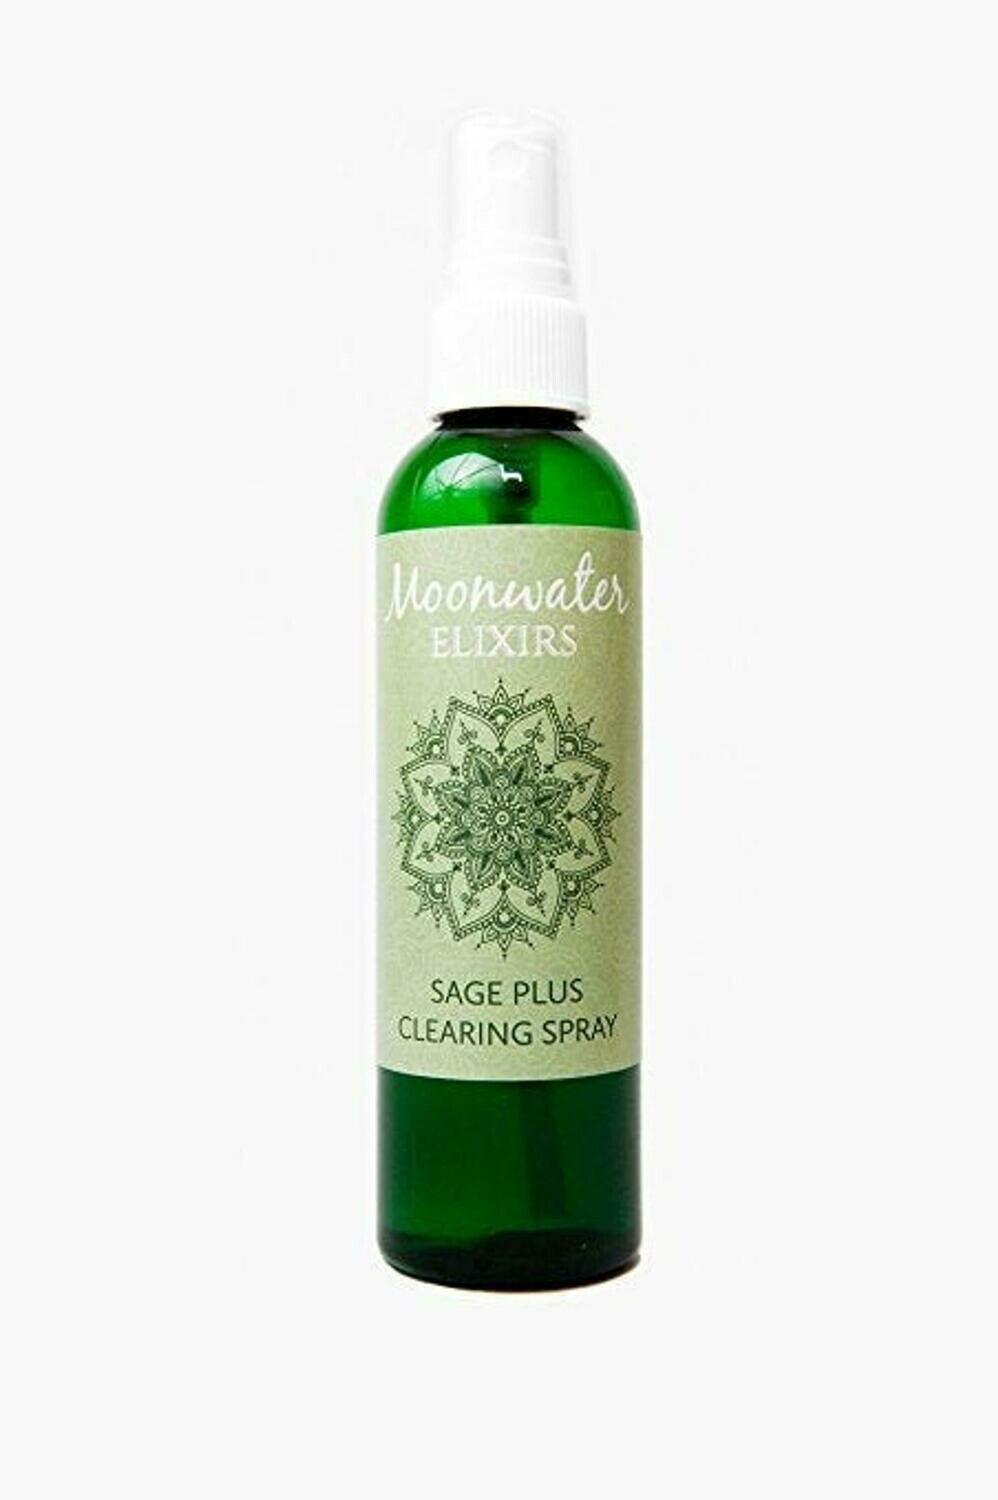 Sage Plus clearing spray